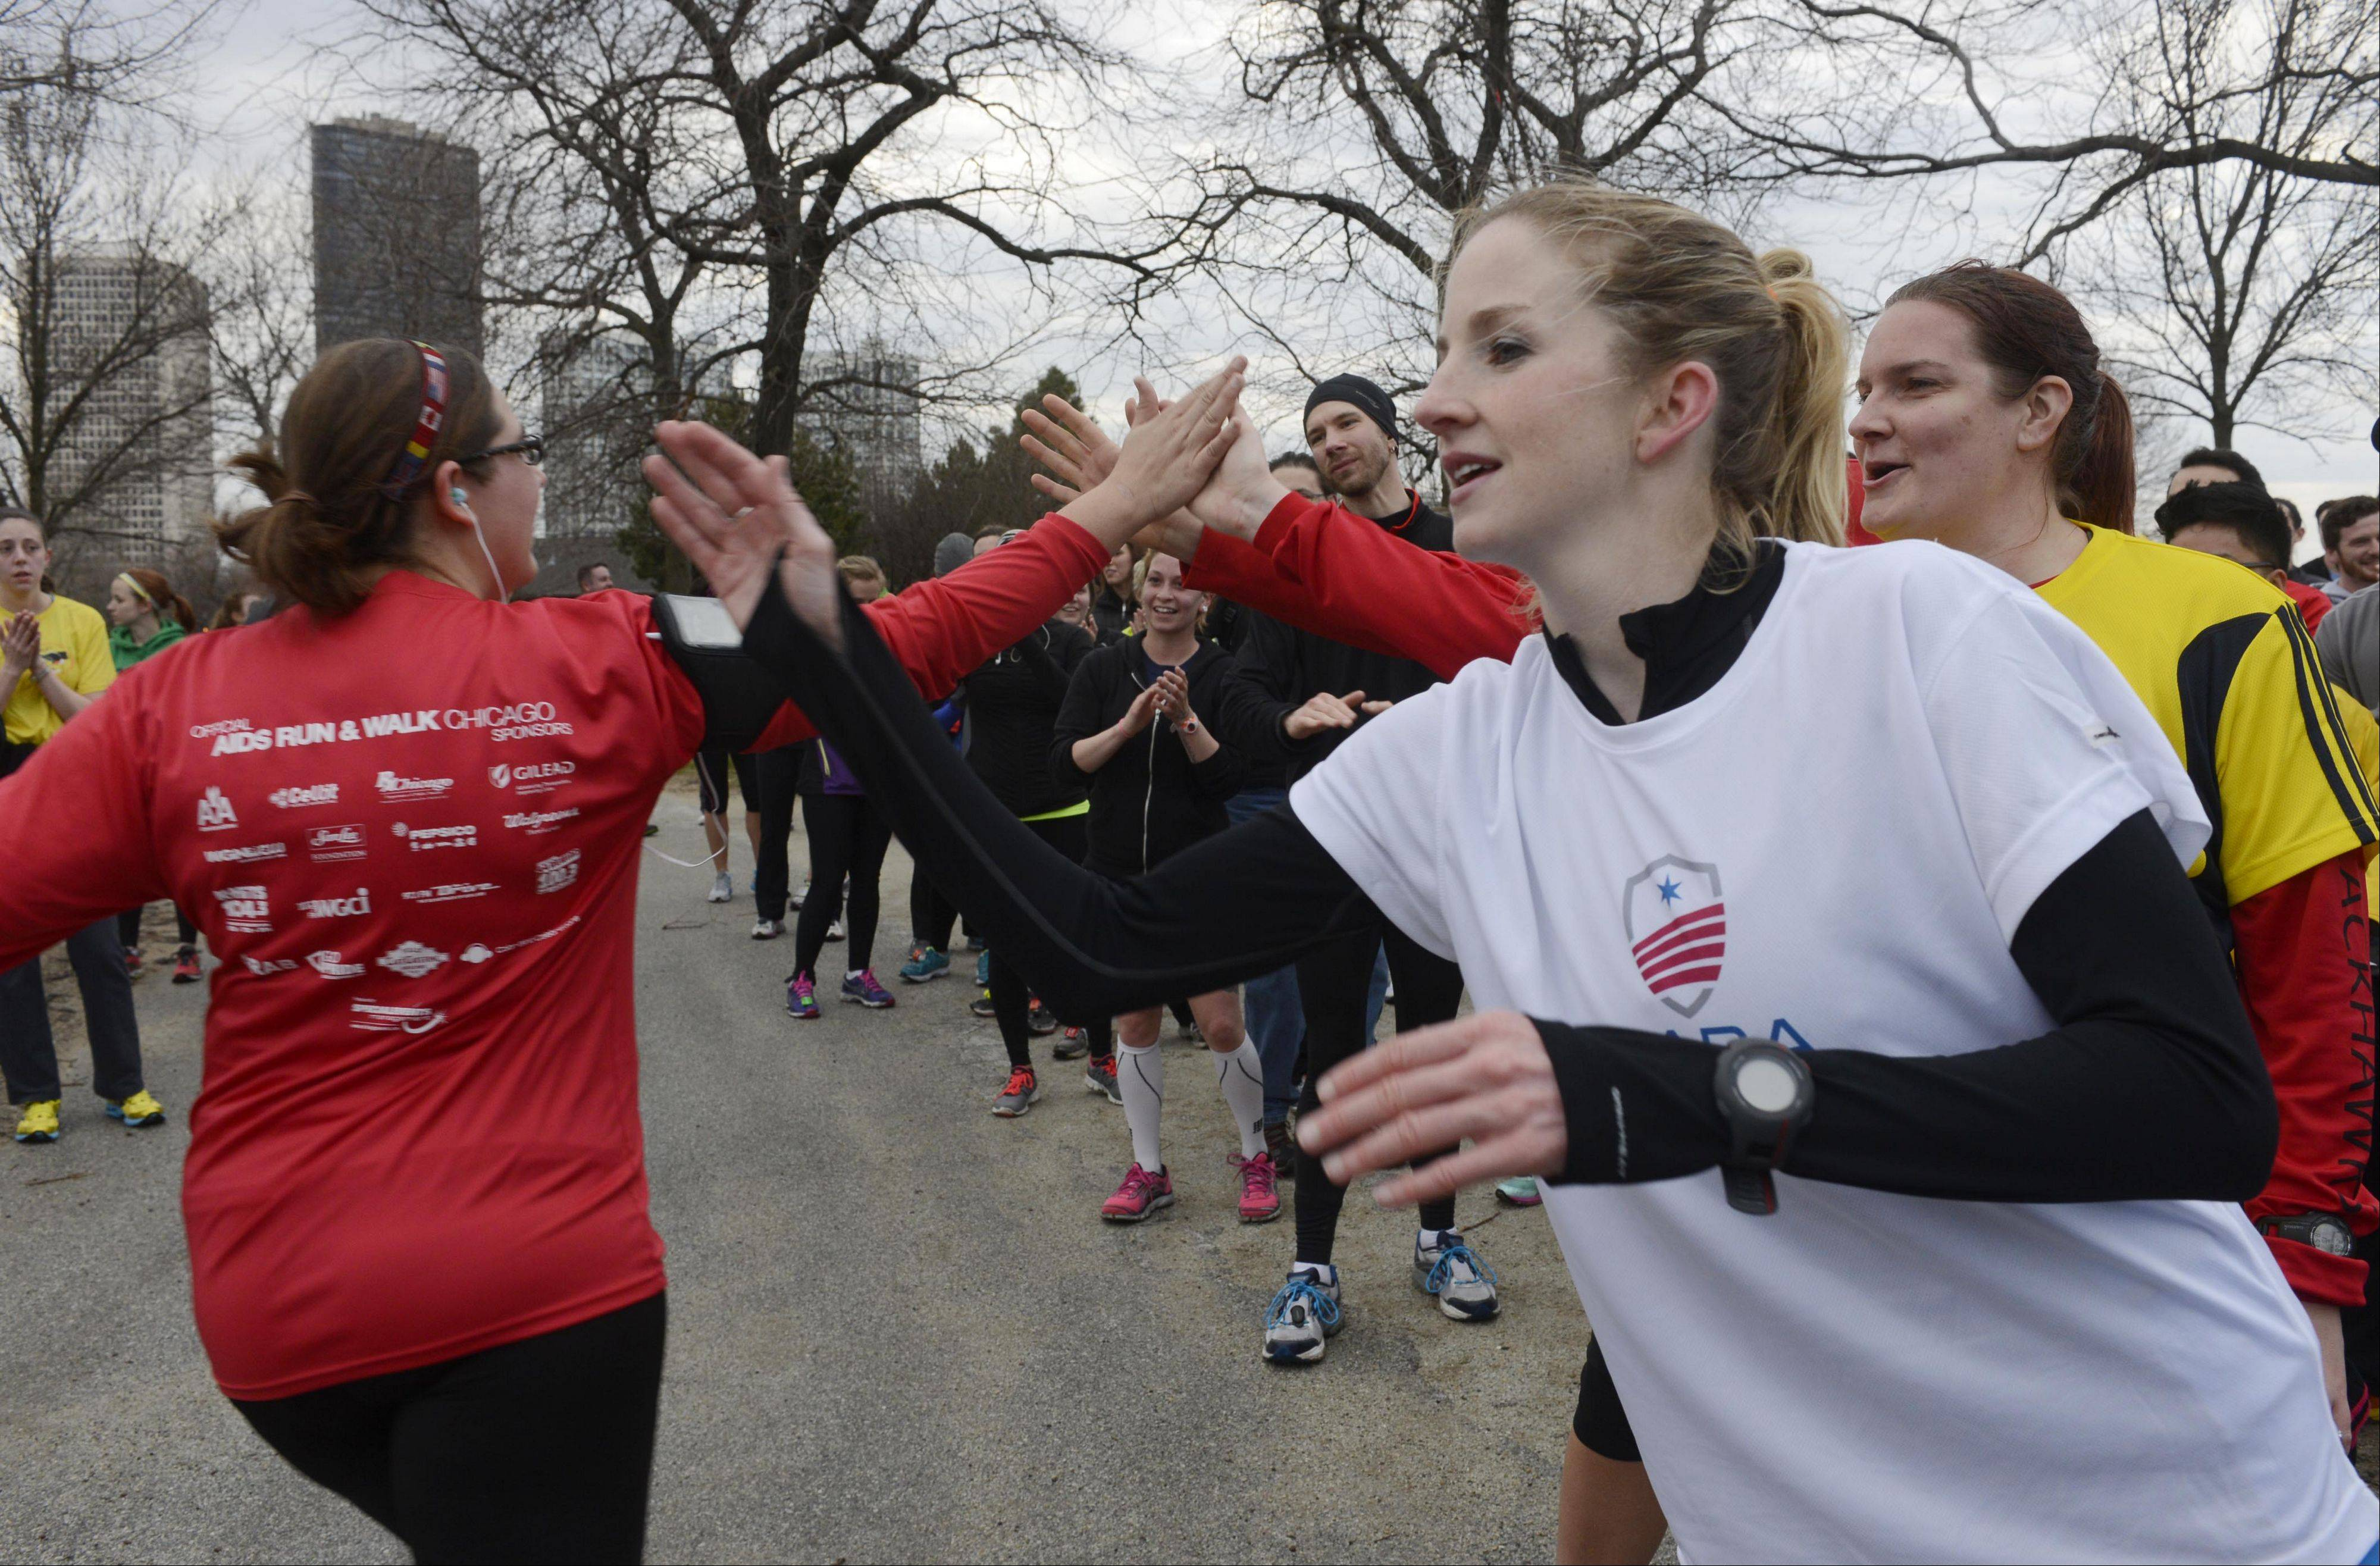 Meg Sullivan, training program manager of the Chicago Area Runners Association, high-fives participants at the end of a memorial run from Foster Avenue Beach in Chicago, honoring victims of the Boston Marathon bombing.